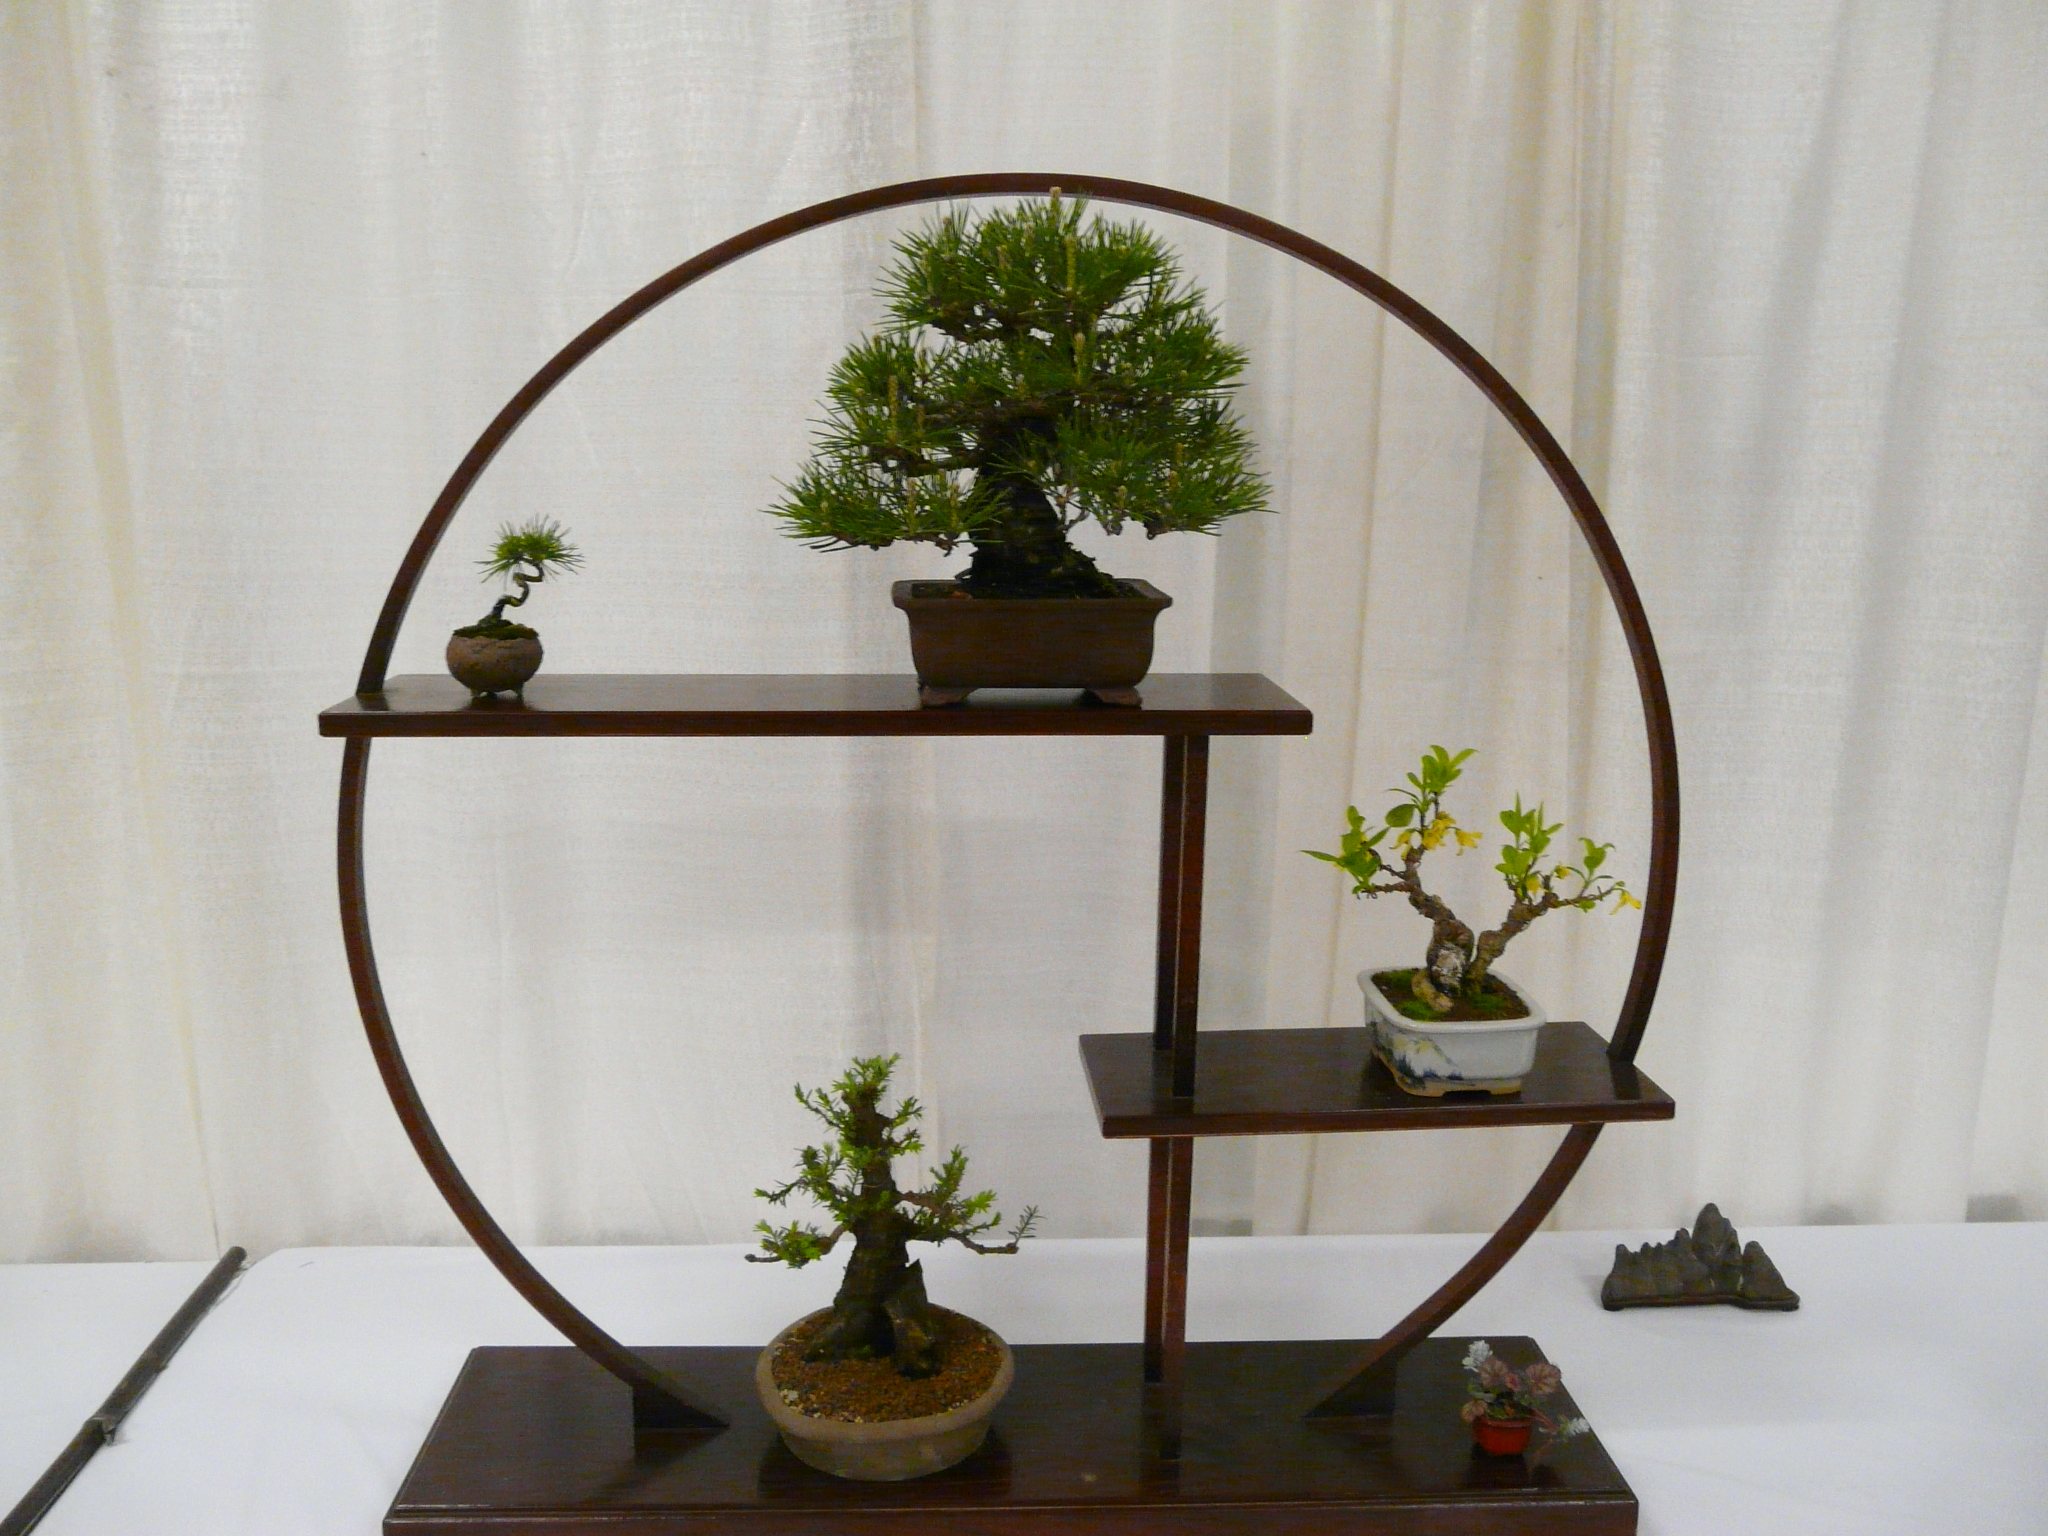 Backyard Bonsai Display : 2010Mar24SFFlowerGardenShow47Bonsaidisplayjpg